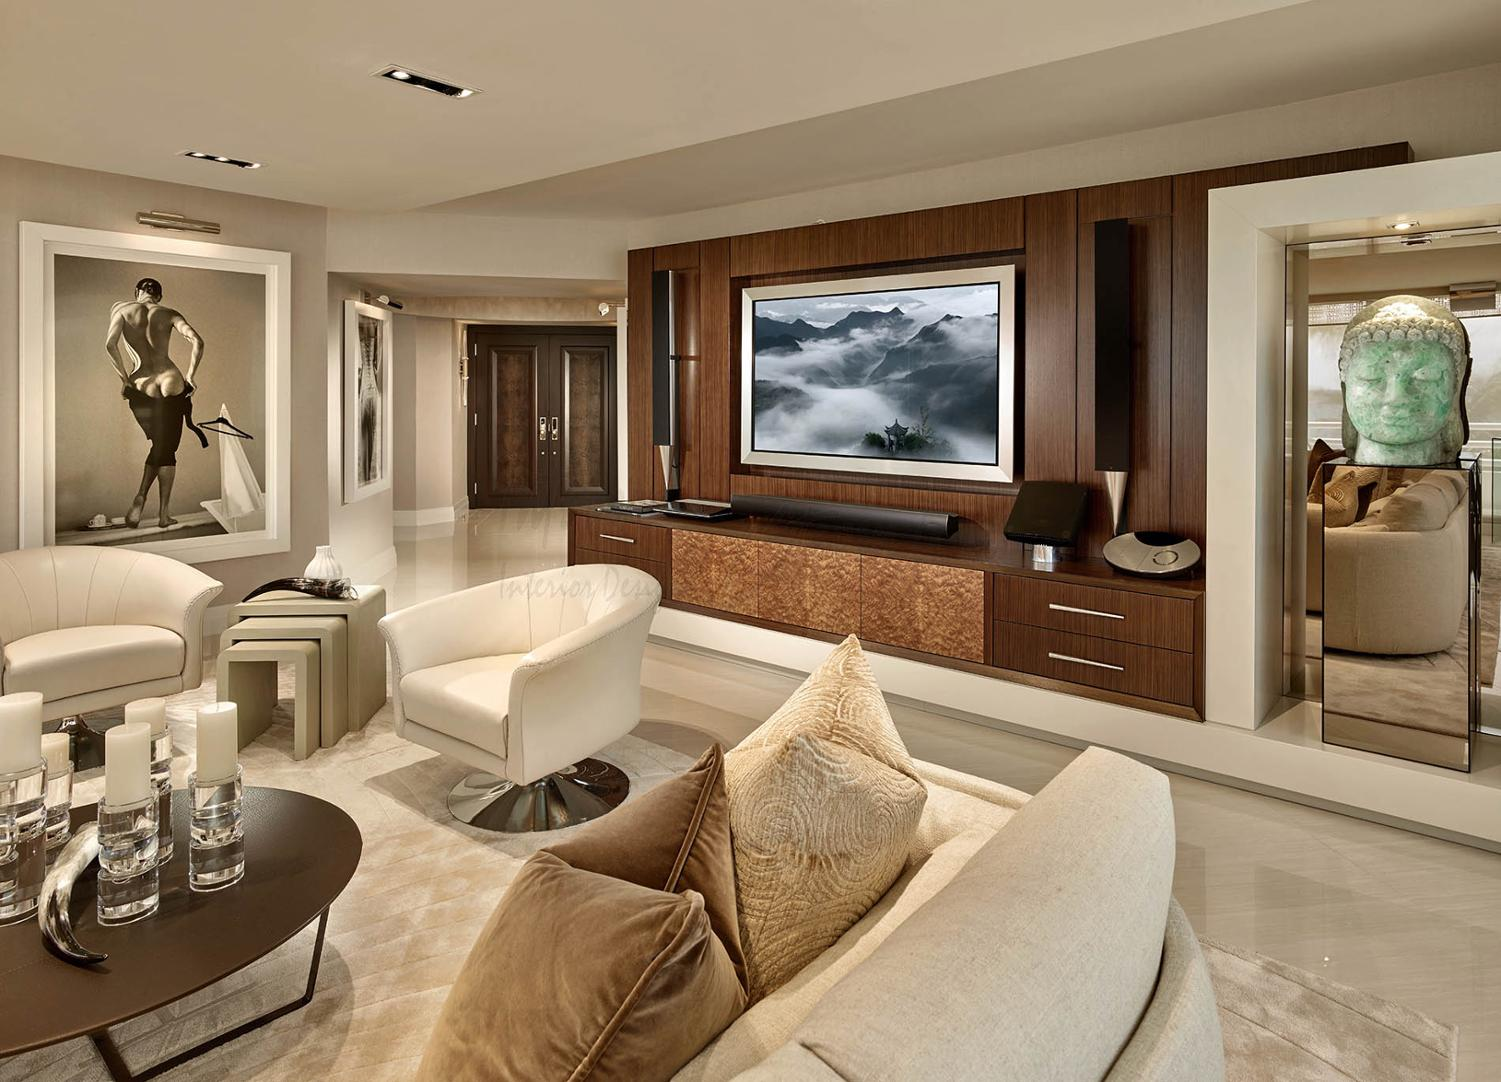 Interiors by Steven G. - Pompano Beach, Florida 33064 - TheBathOutlet